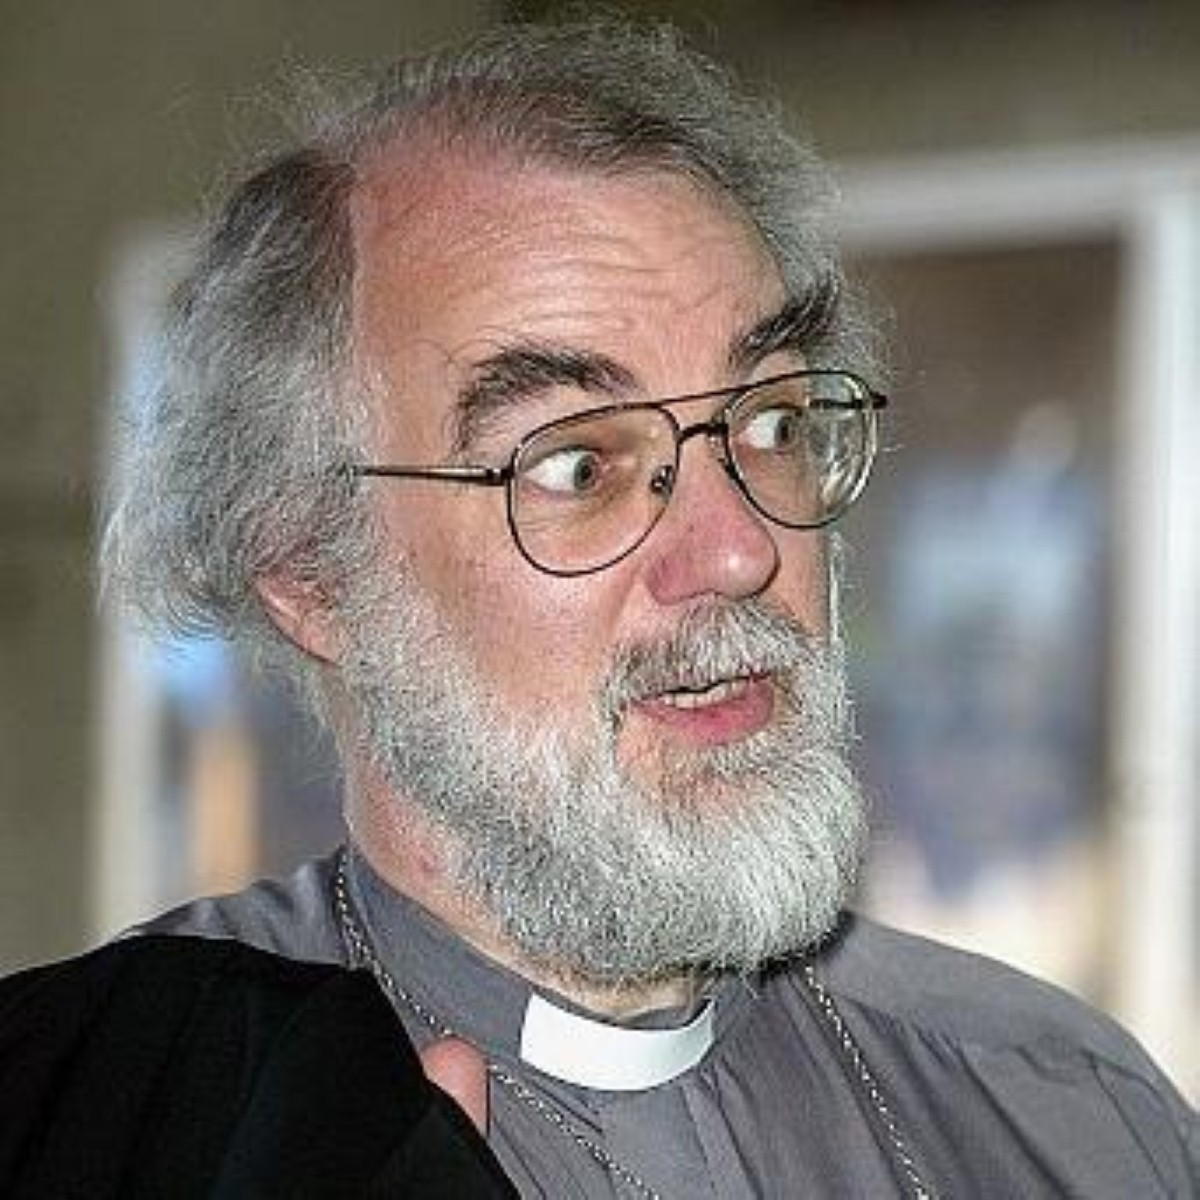 Disestablishment is a serious danger of the coalition's proposals, the Church of England fears